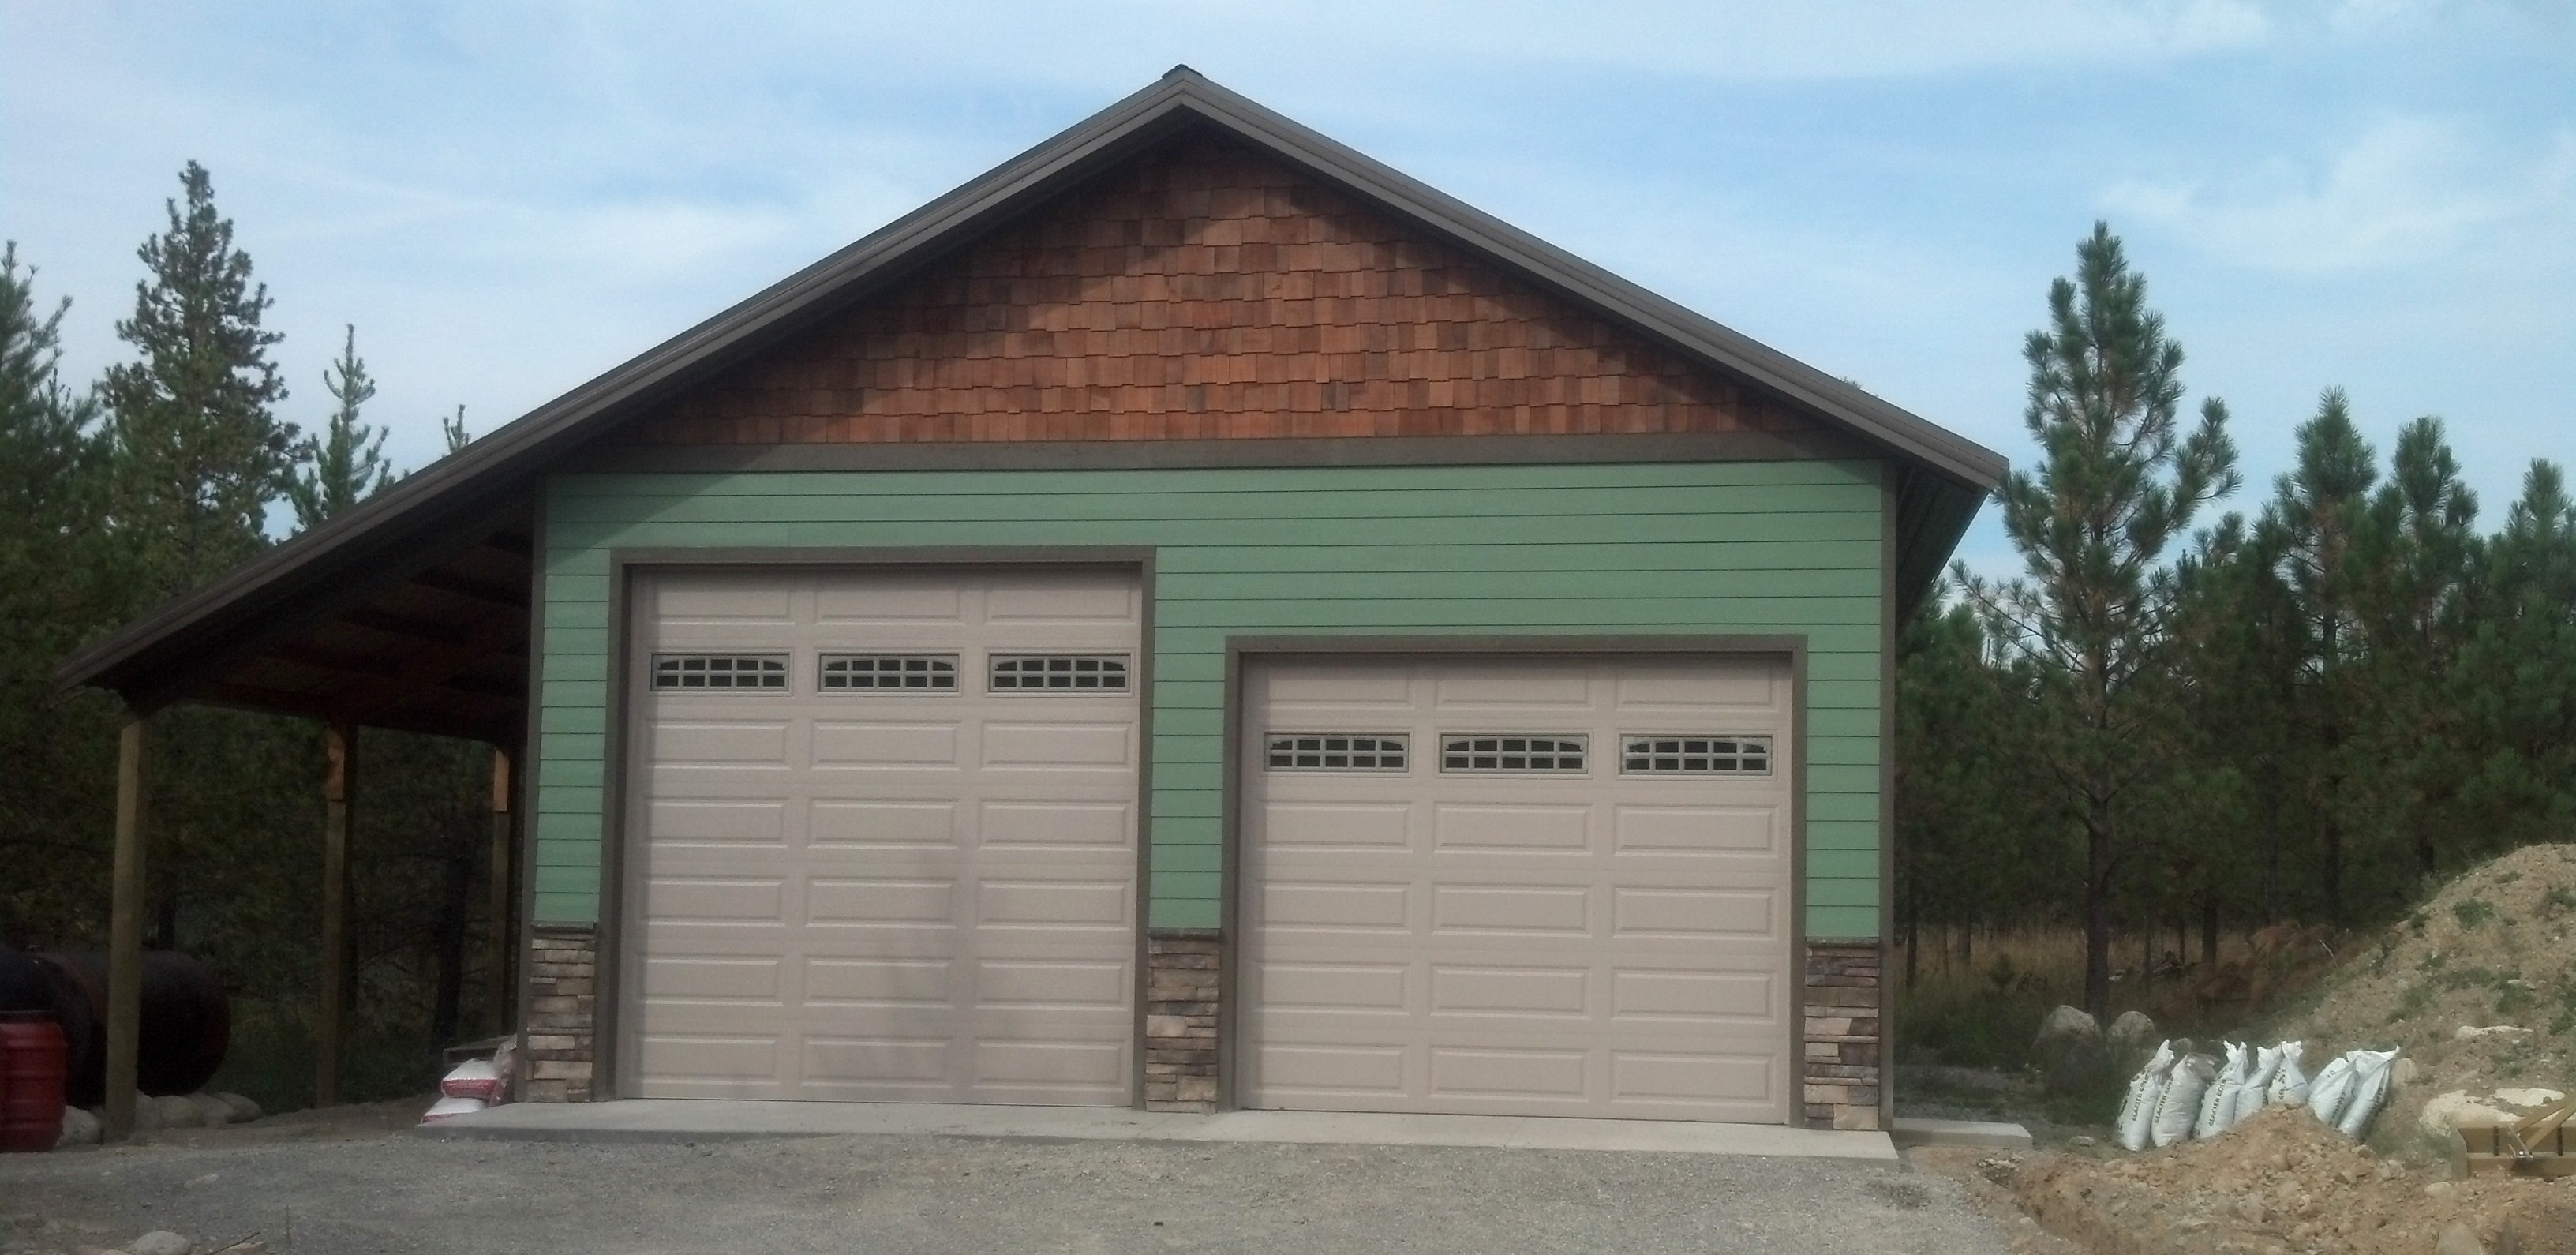 eastern img garages buildings barns west barn wv pole fairmont garage virginia